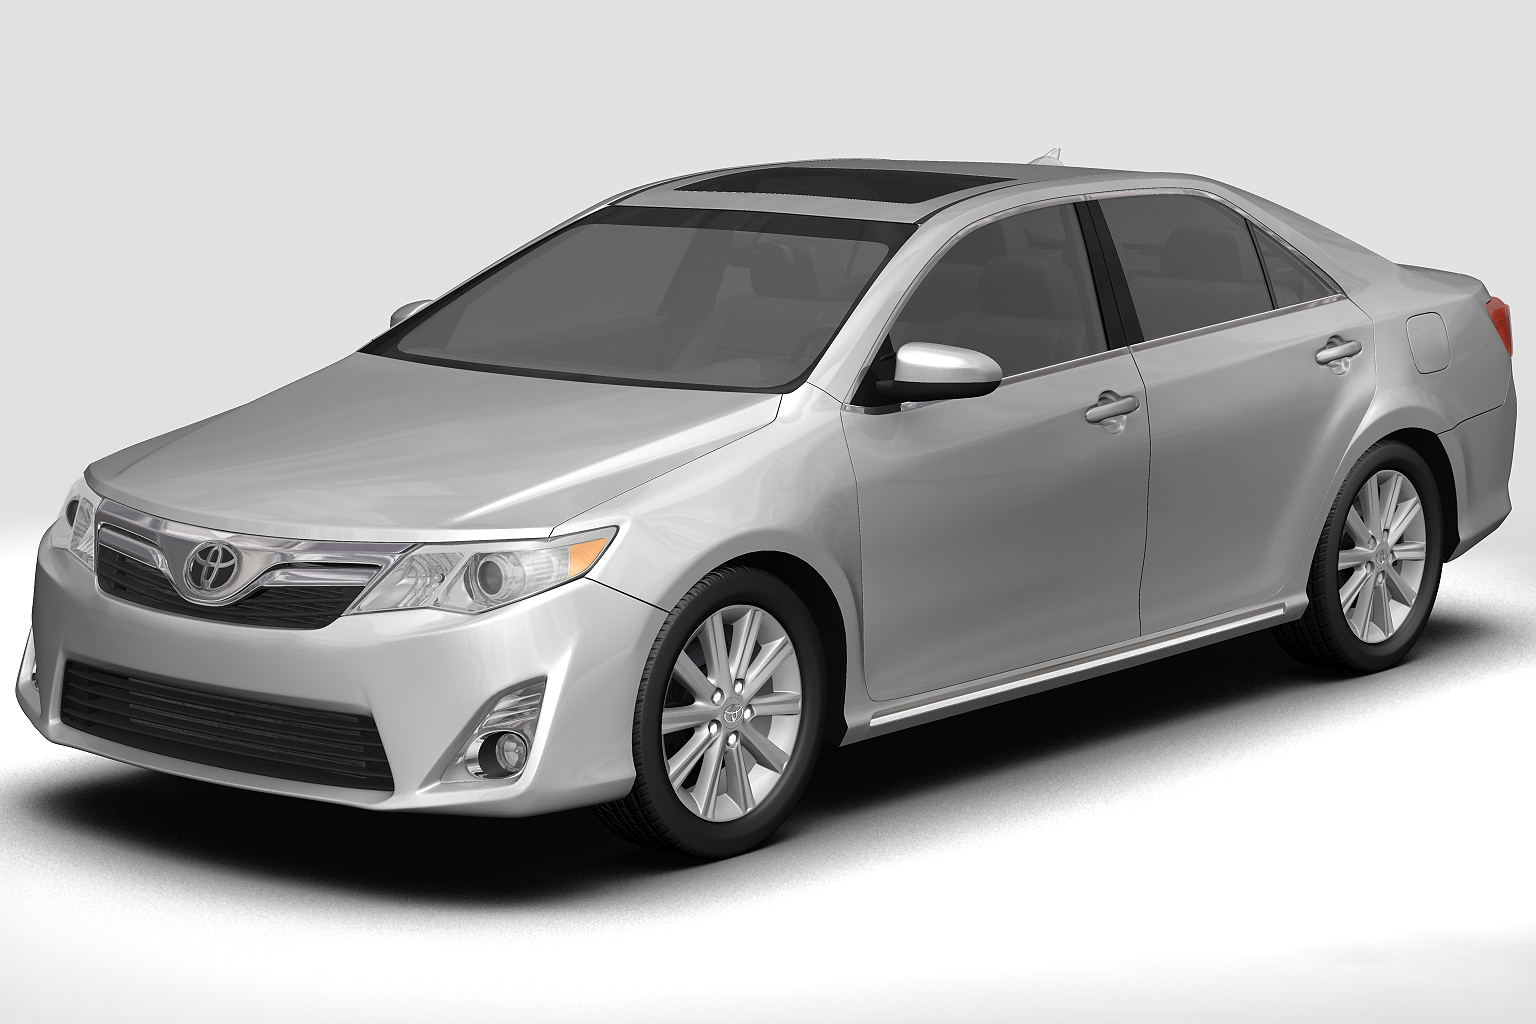 2012 toyota camry 3d загвар 3ds max fbx c4d lwo hrc xsi obj 136171